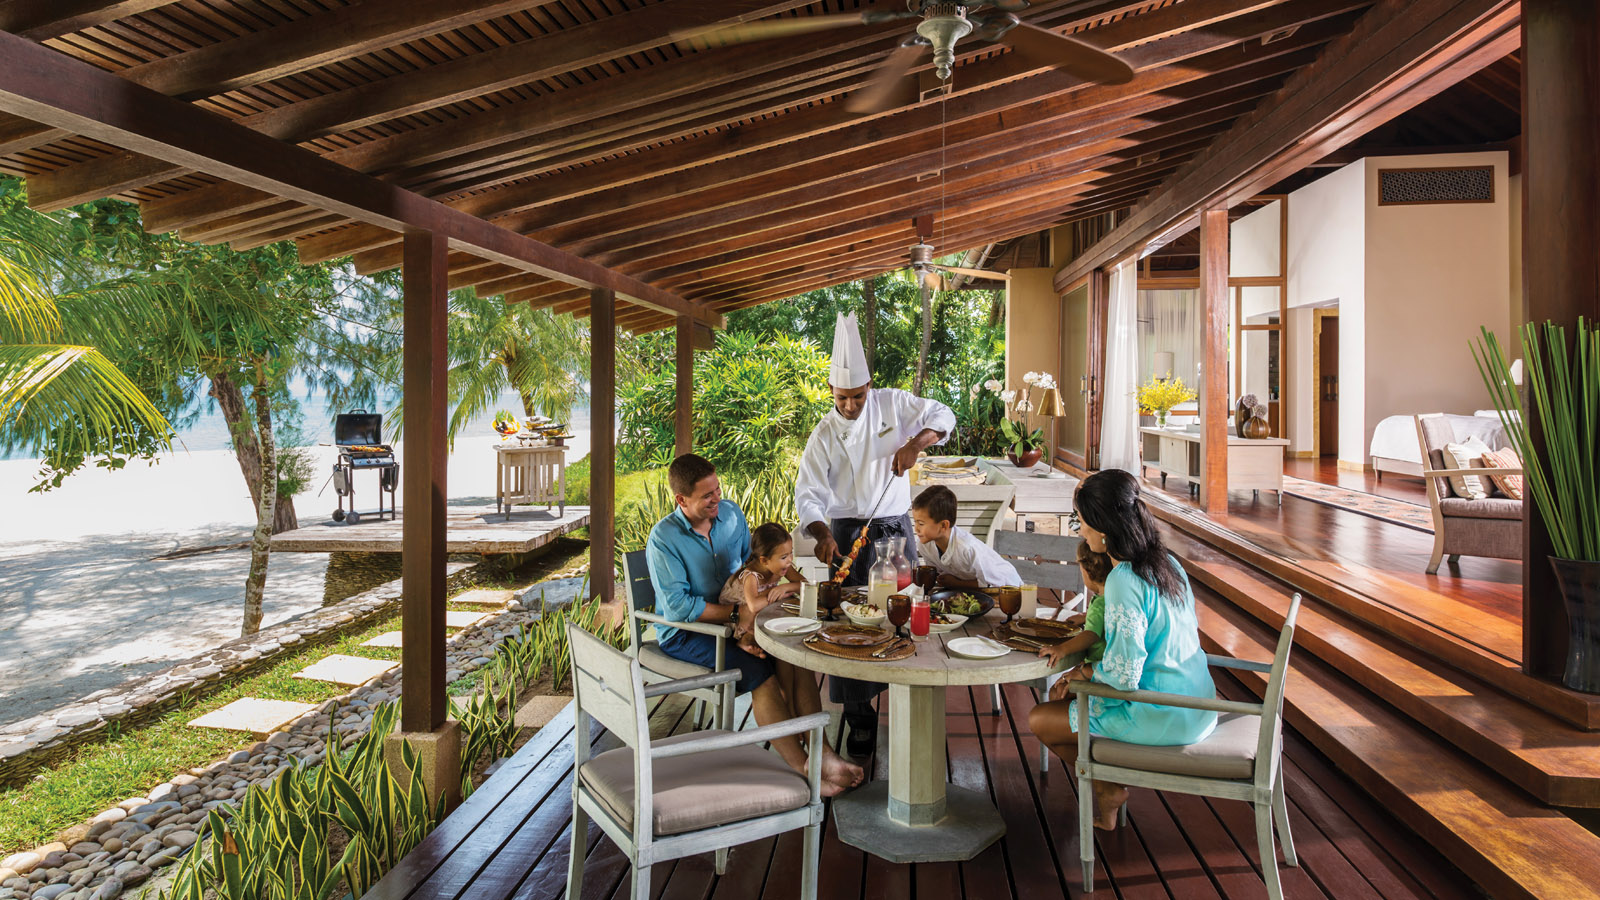 At four seasons resort langkawi immerse the whole family in our sublime natural ecosystem with mangrove and monkeys safaris rainforest cruises